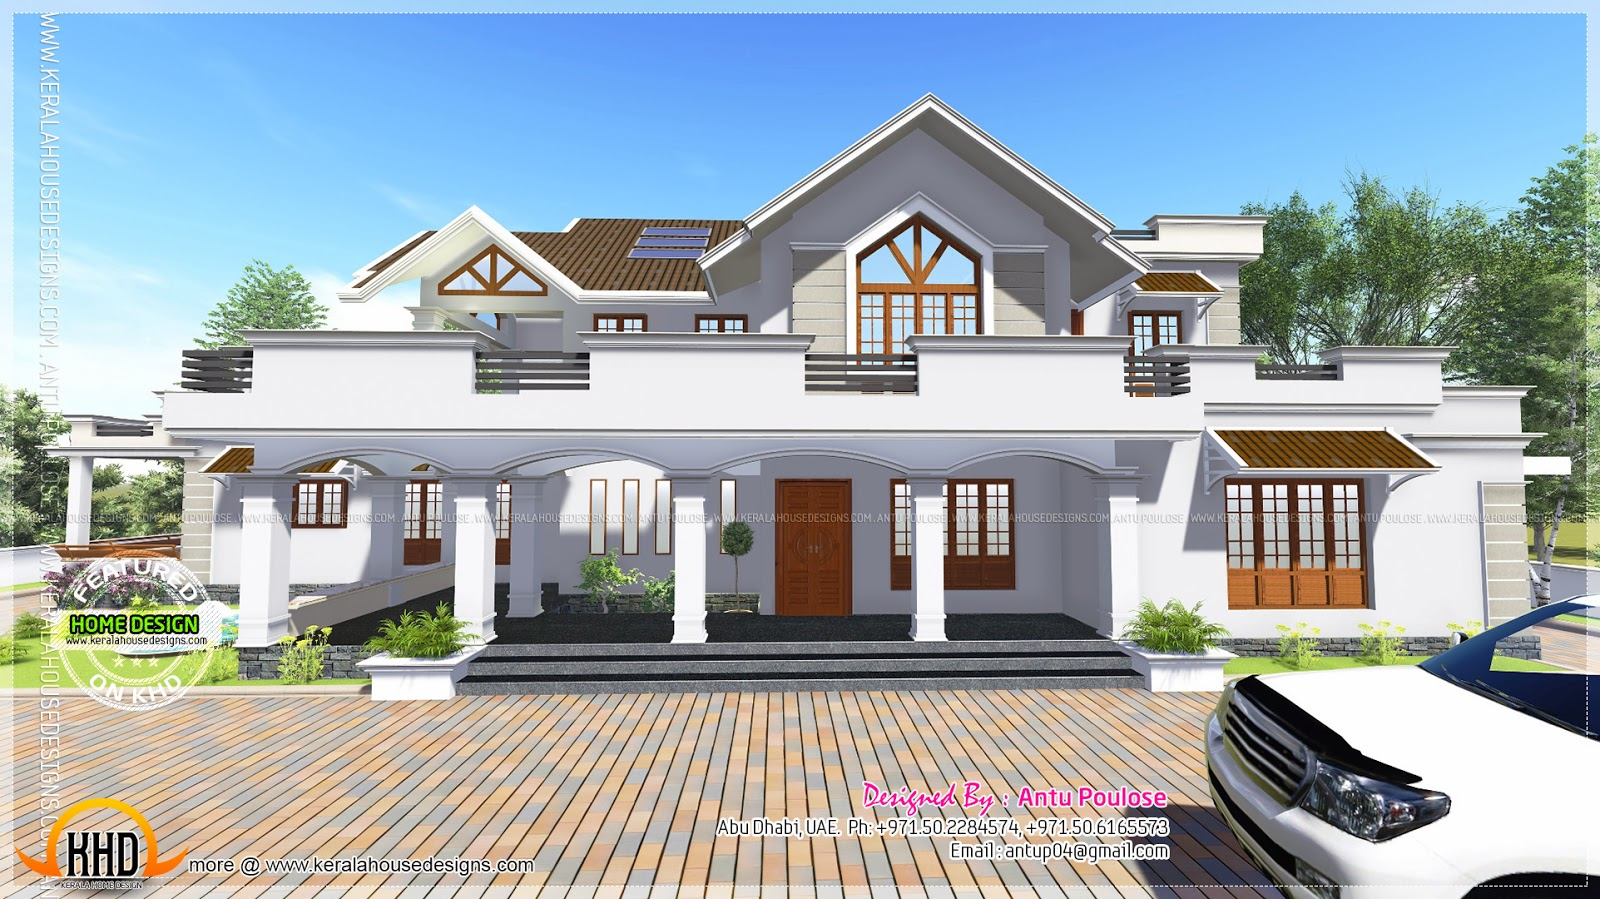 10000 sq ft house plans india for Home plans over 10000 square feet